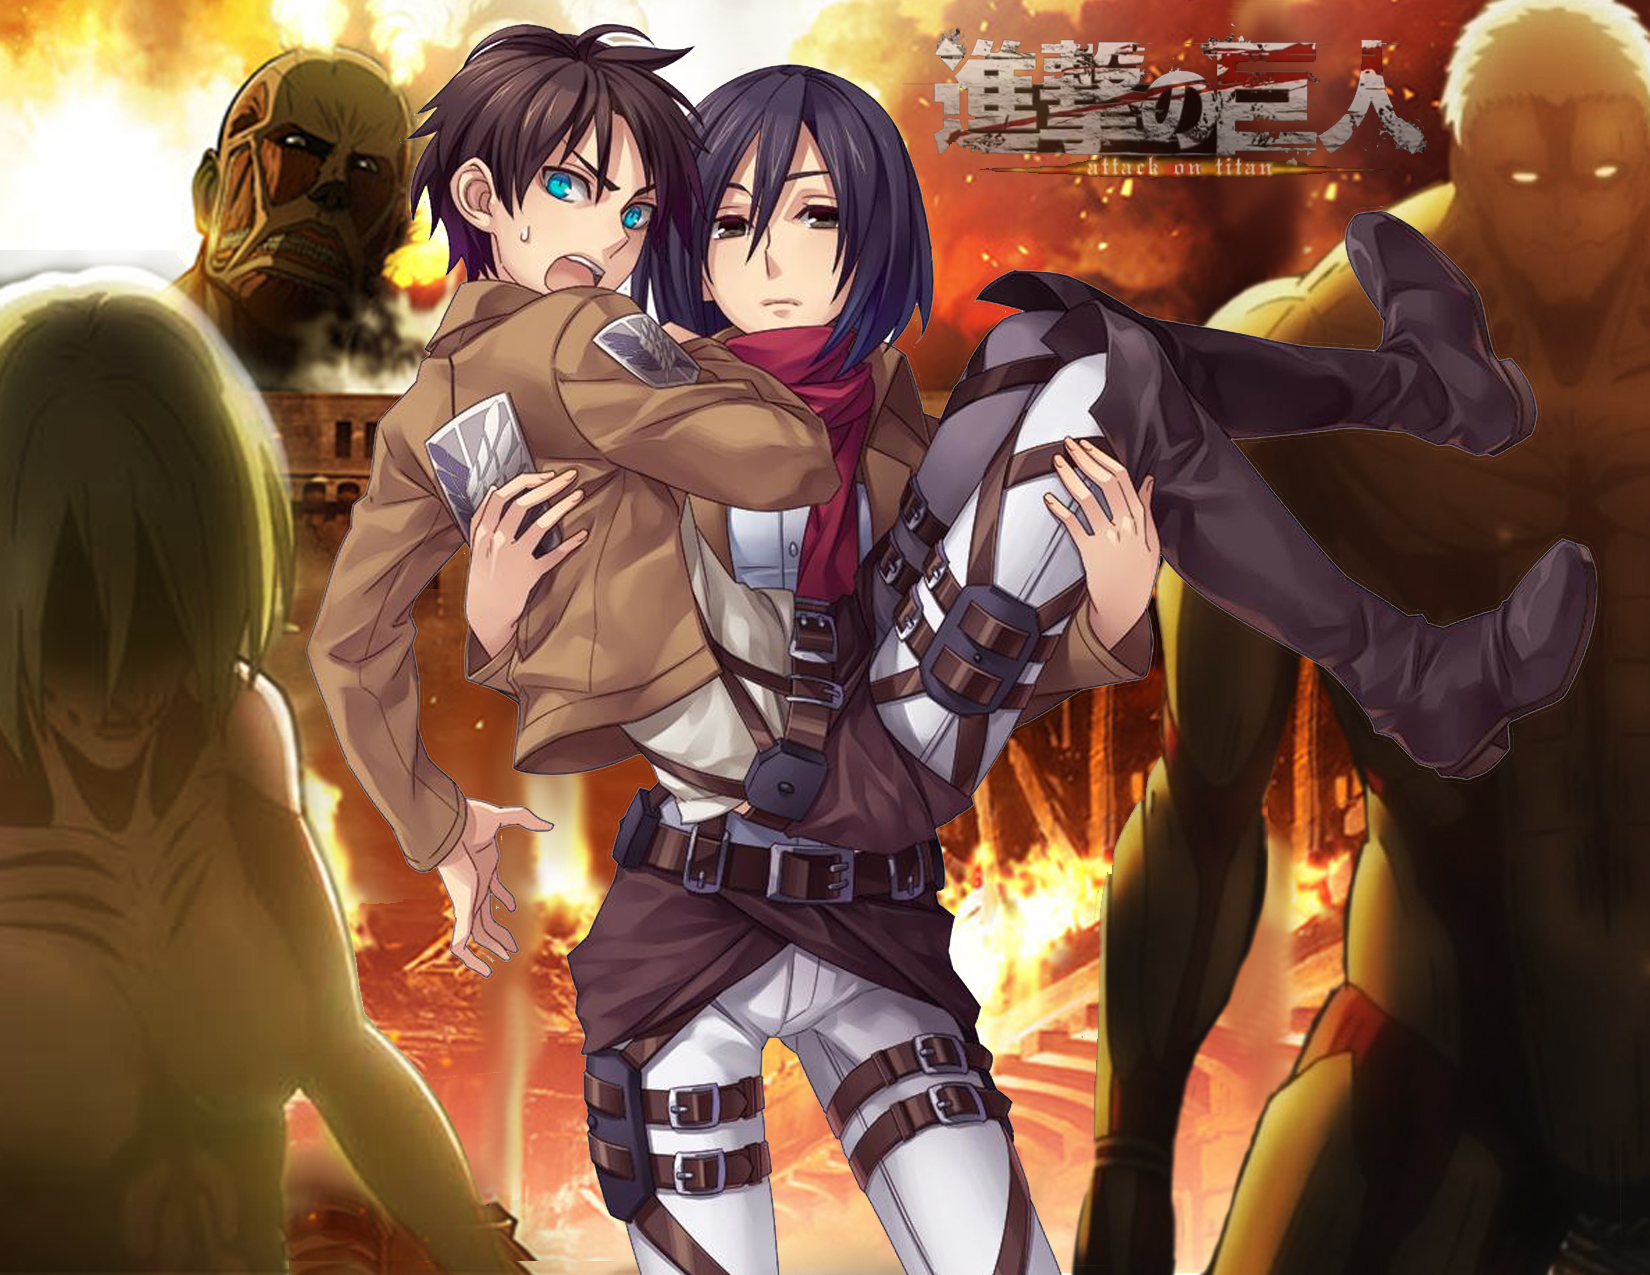 8 Fantastic Attack on Titan Wallpapers Daily Anime Art 1650x1275